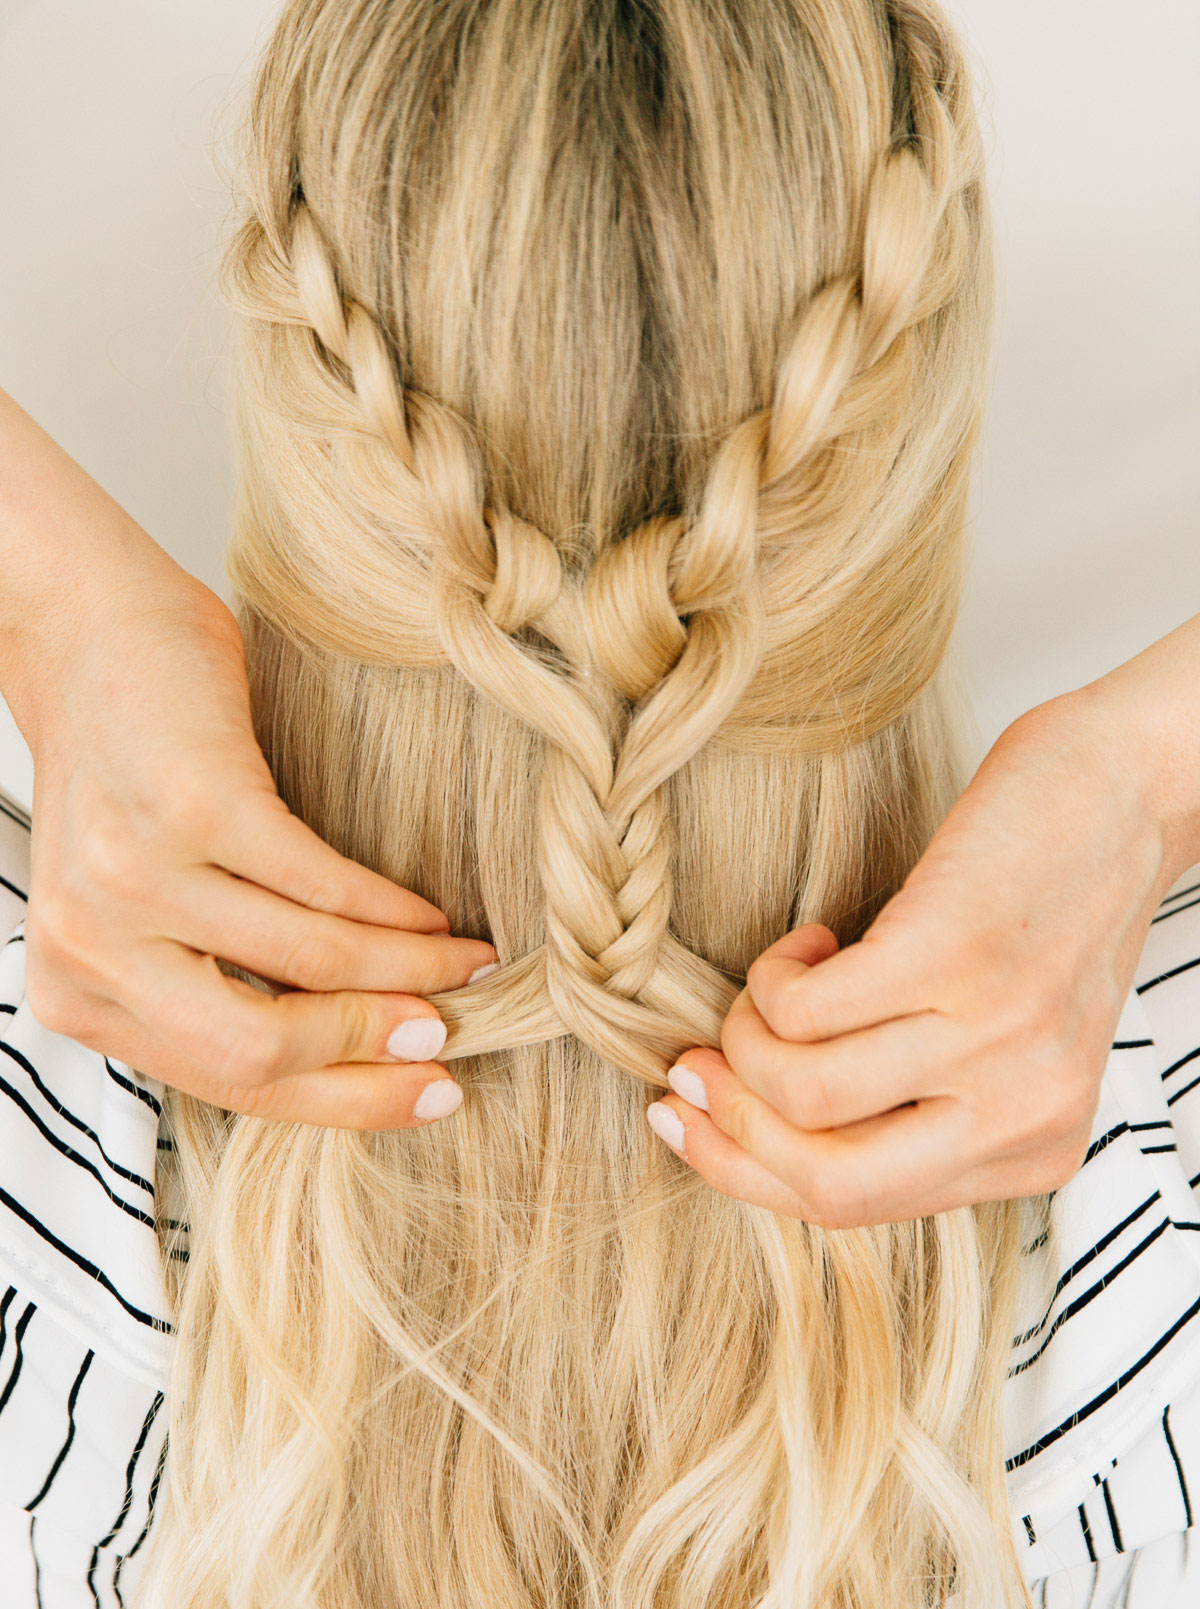 Beautiful Braid Hairstyles ThatÍll Liven Up Your Hair Routine